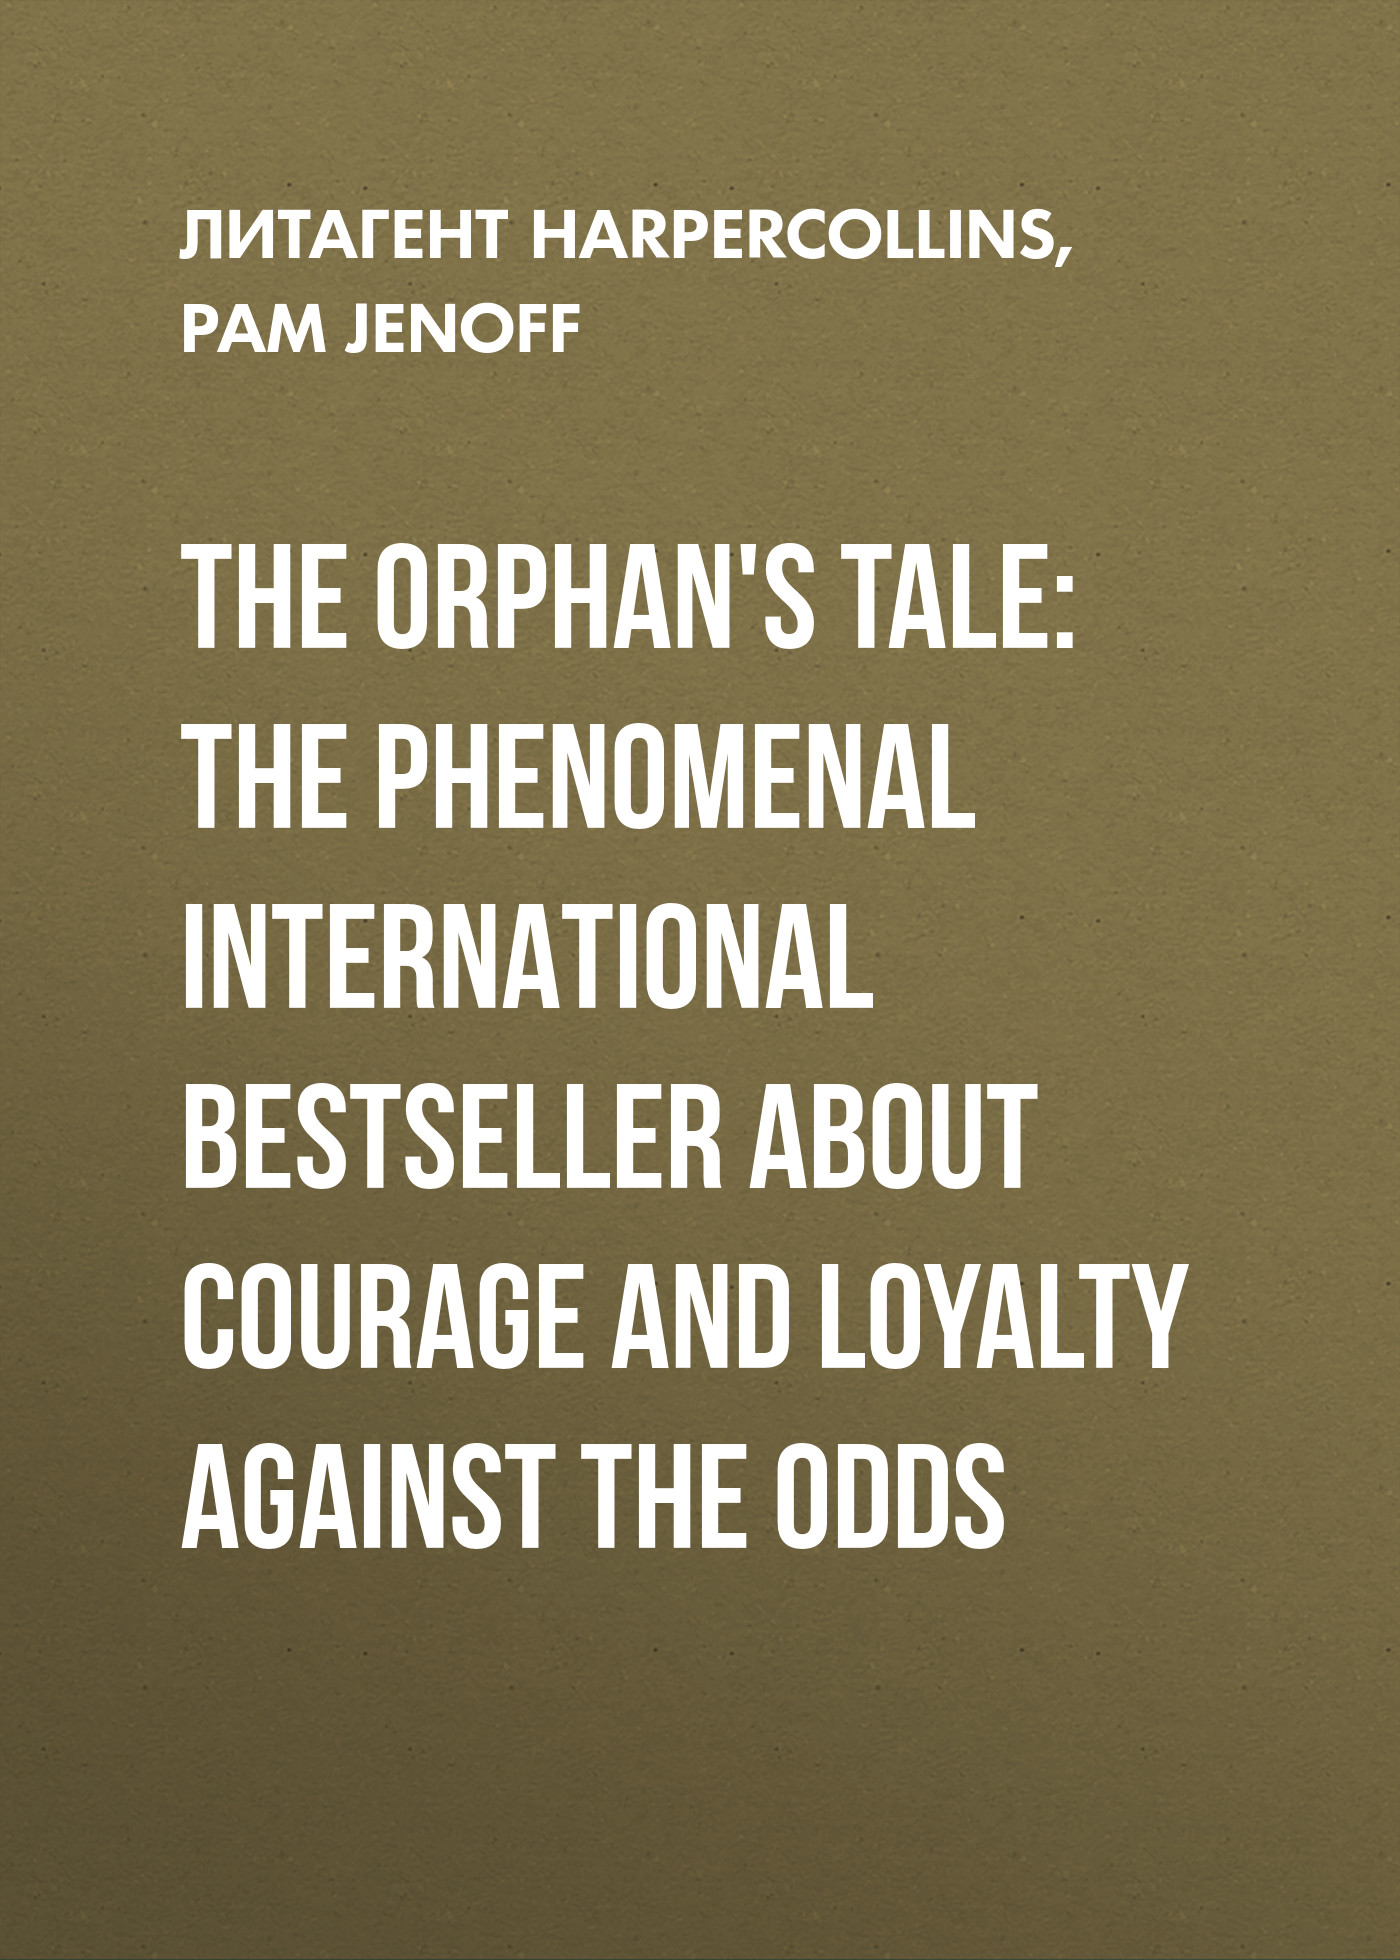 Pam Jenoff The Orphan's Tale: The phenomenal international bestseller about courage and loyalty against the odds pam jenoff the last embrace